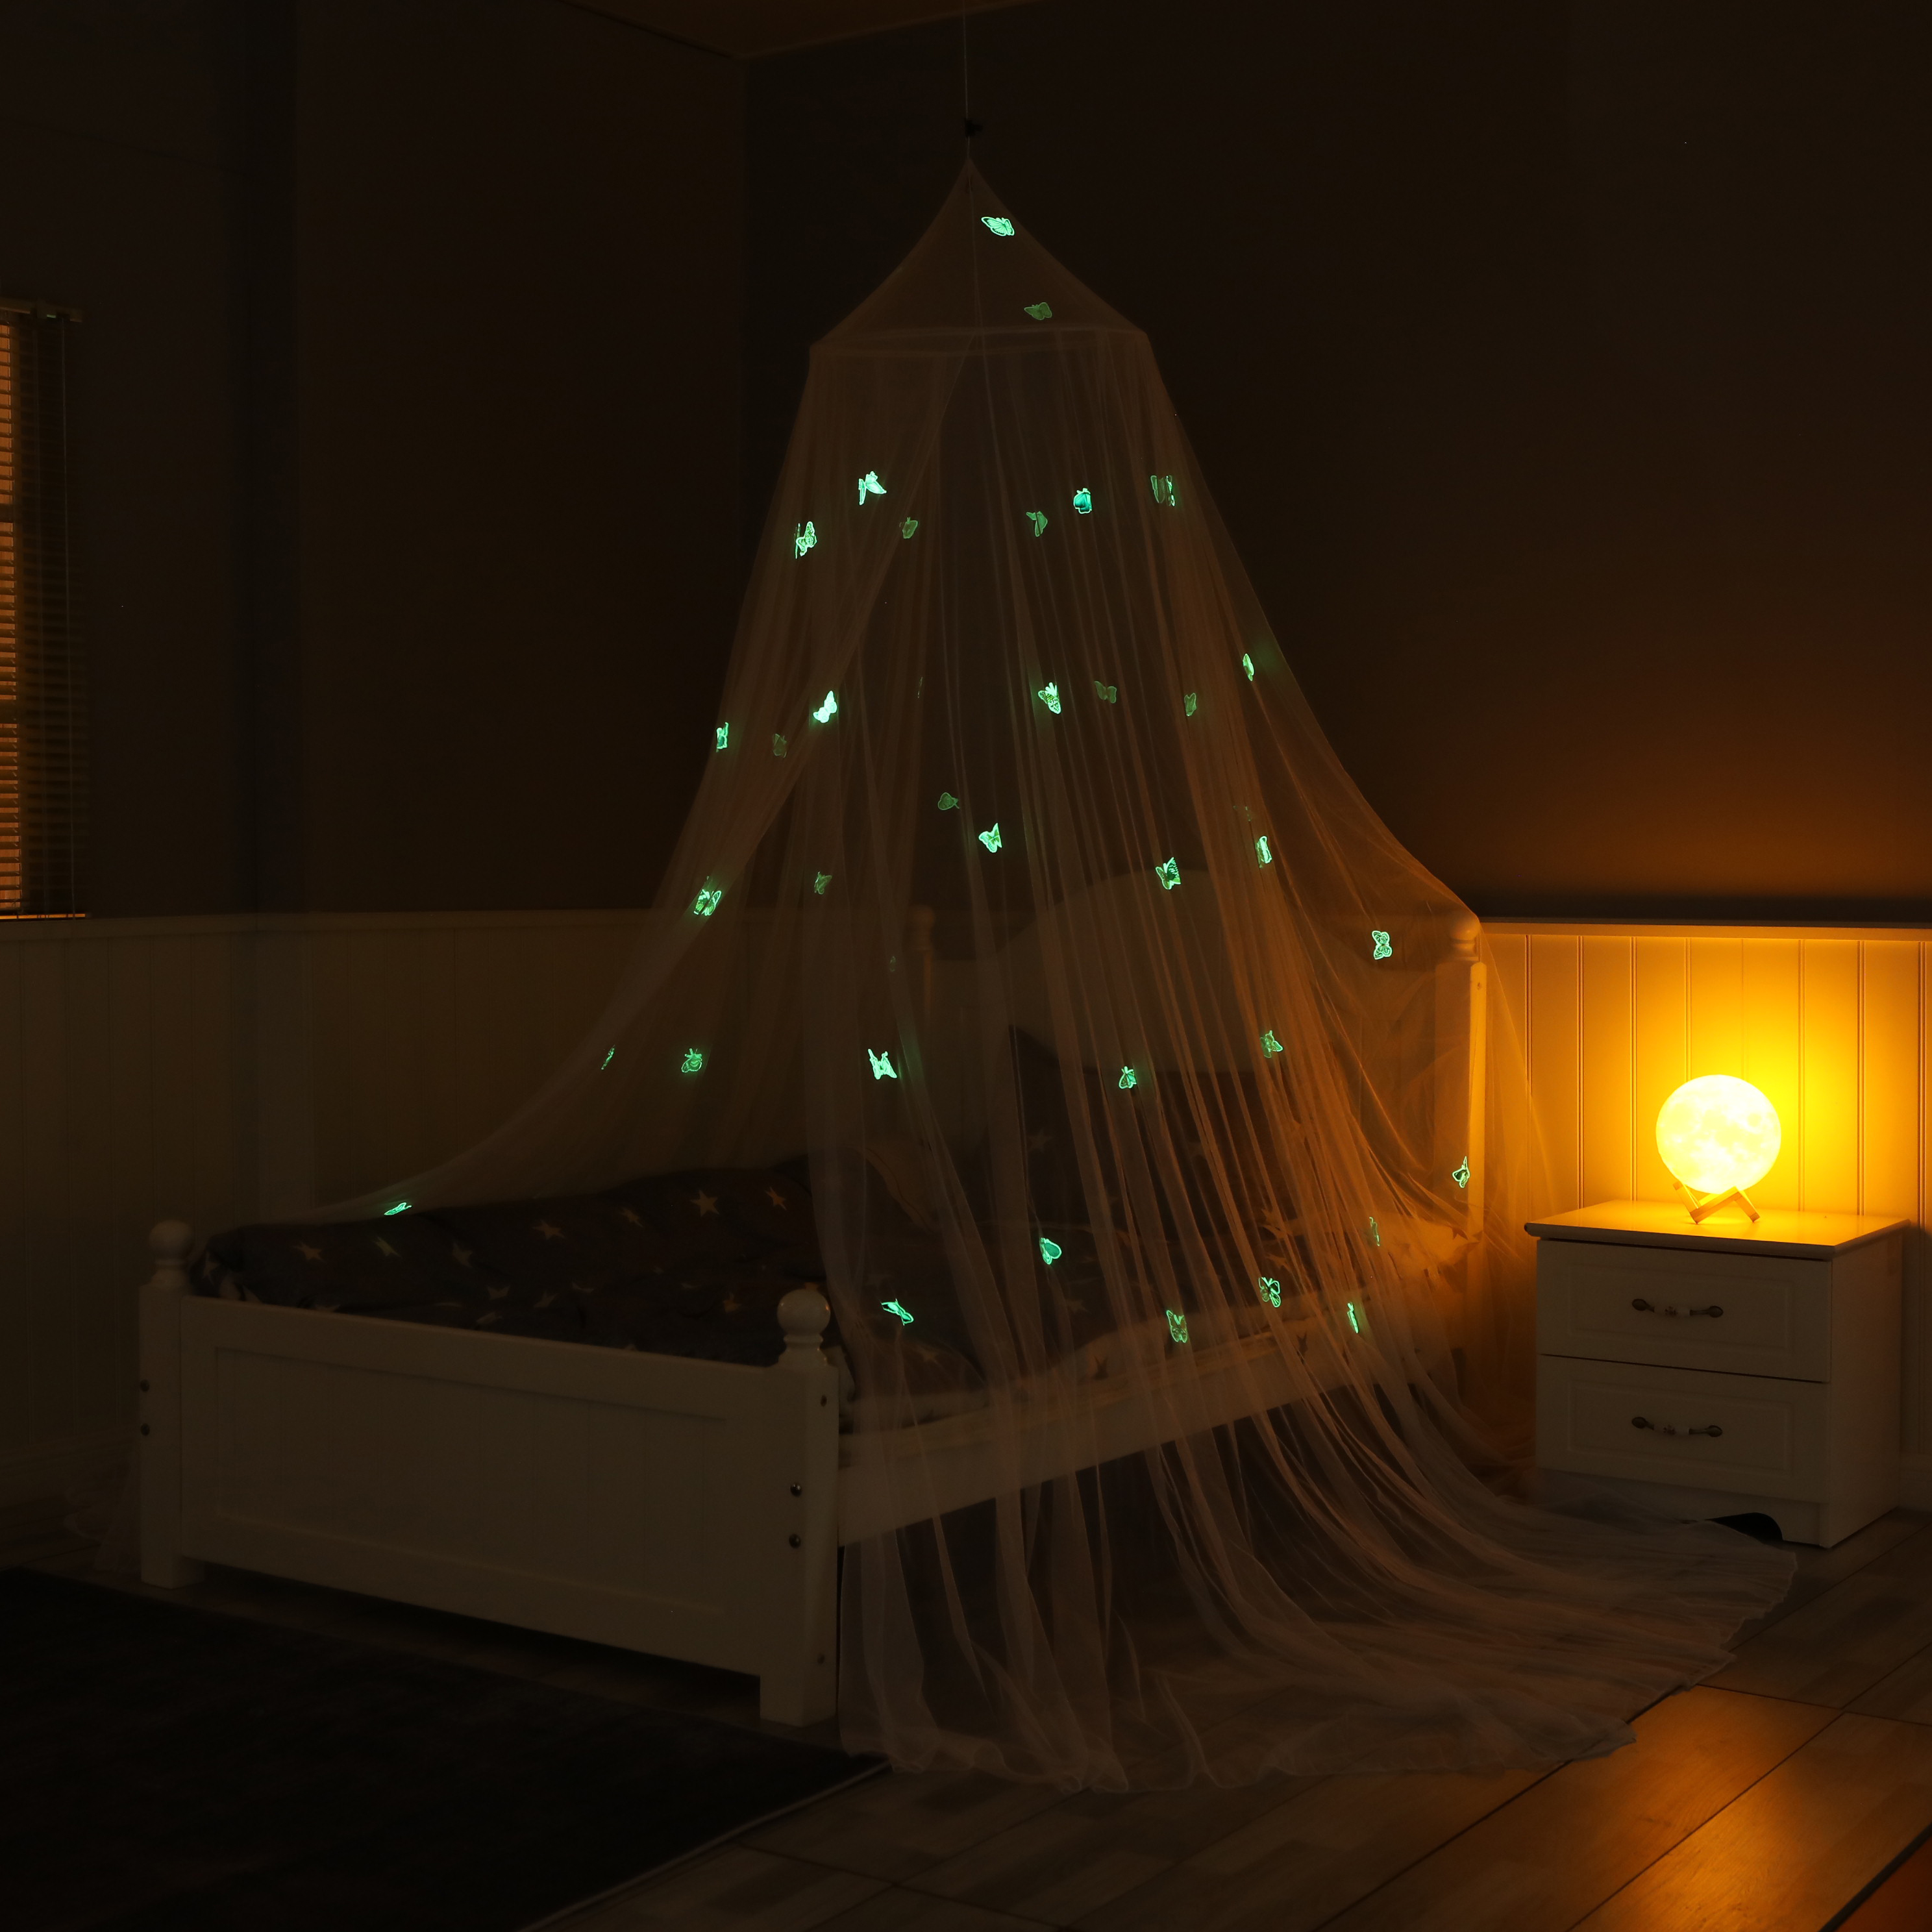 New Design Home Decoration Bed Cot Growing In The Dark Luminous Butterfly Mosquito Net